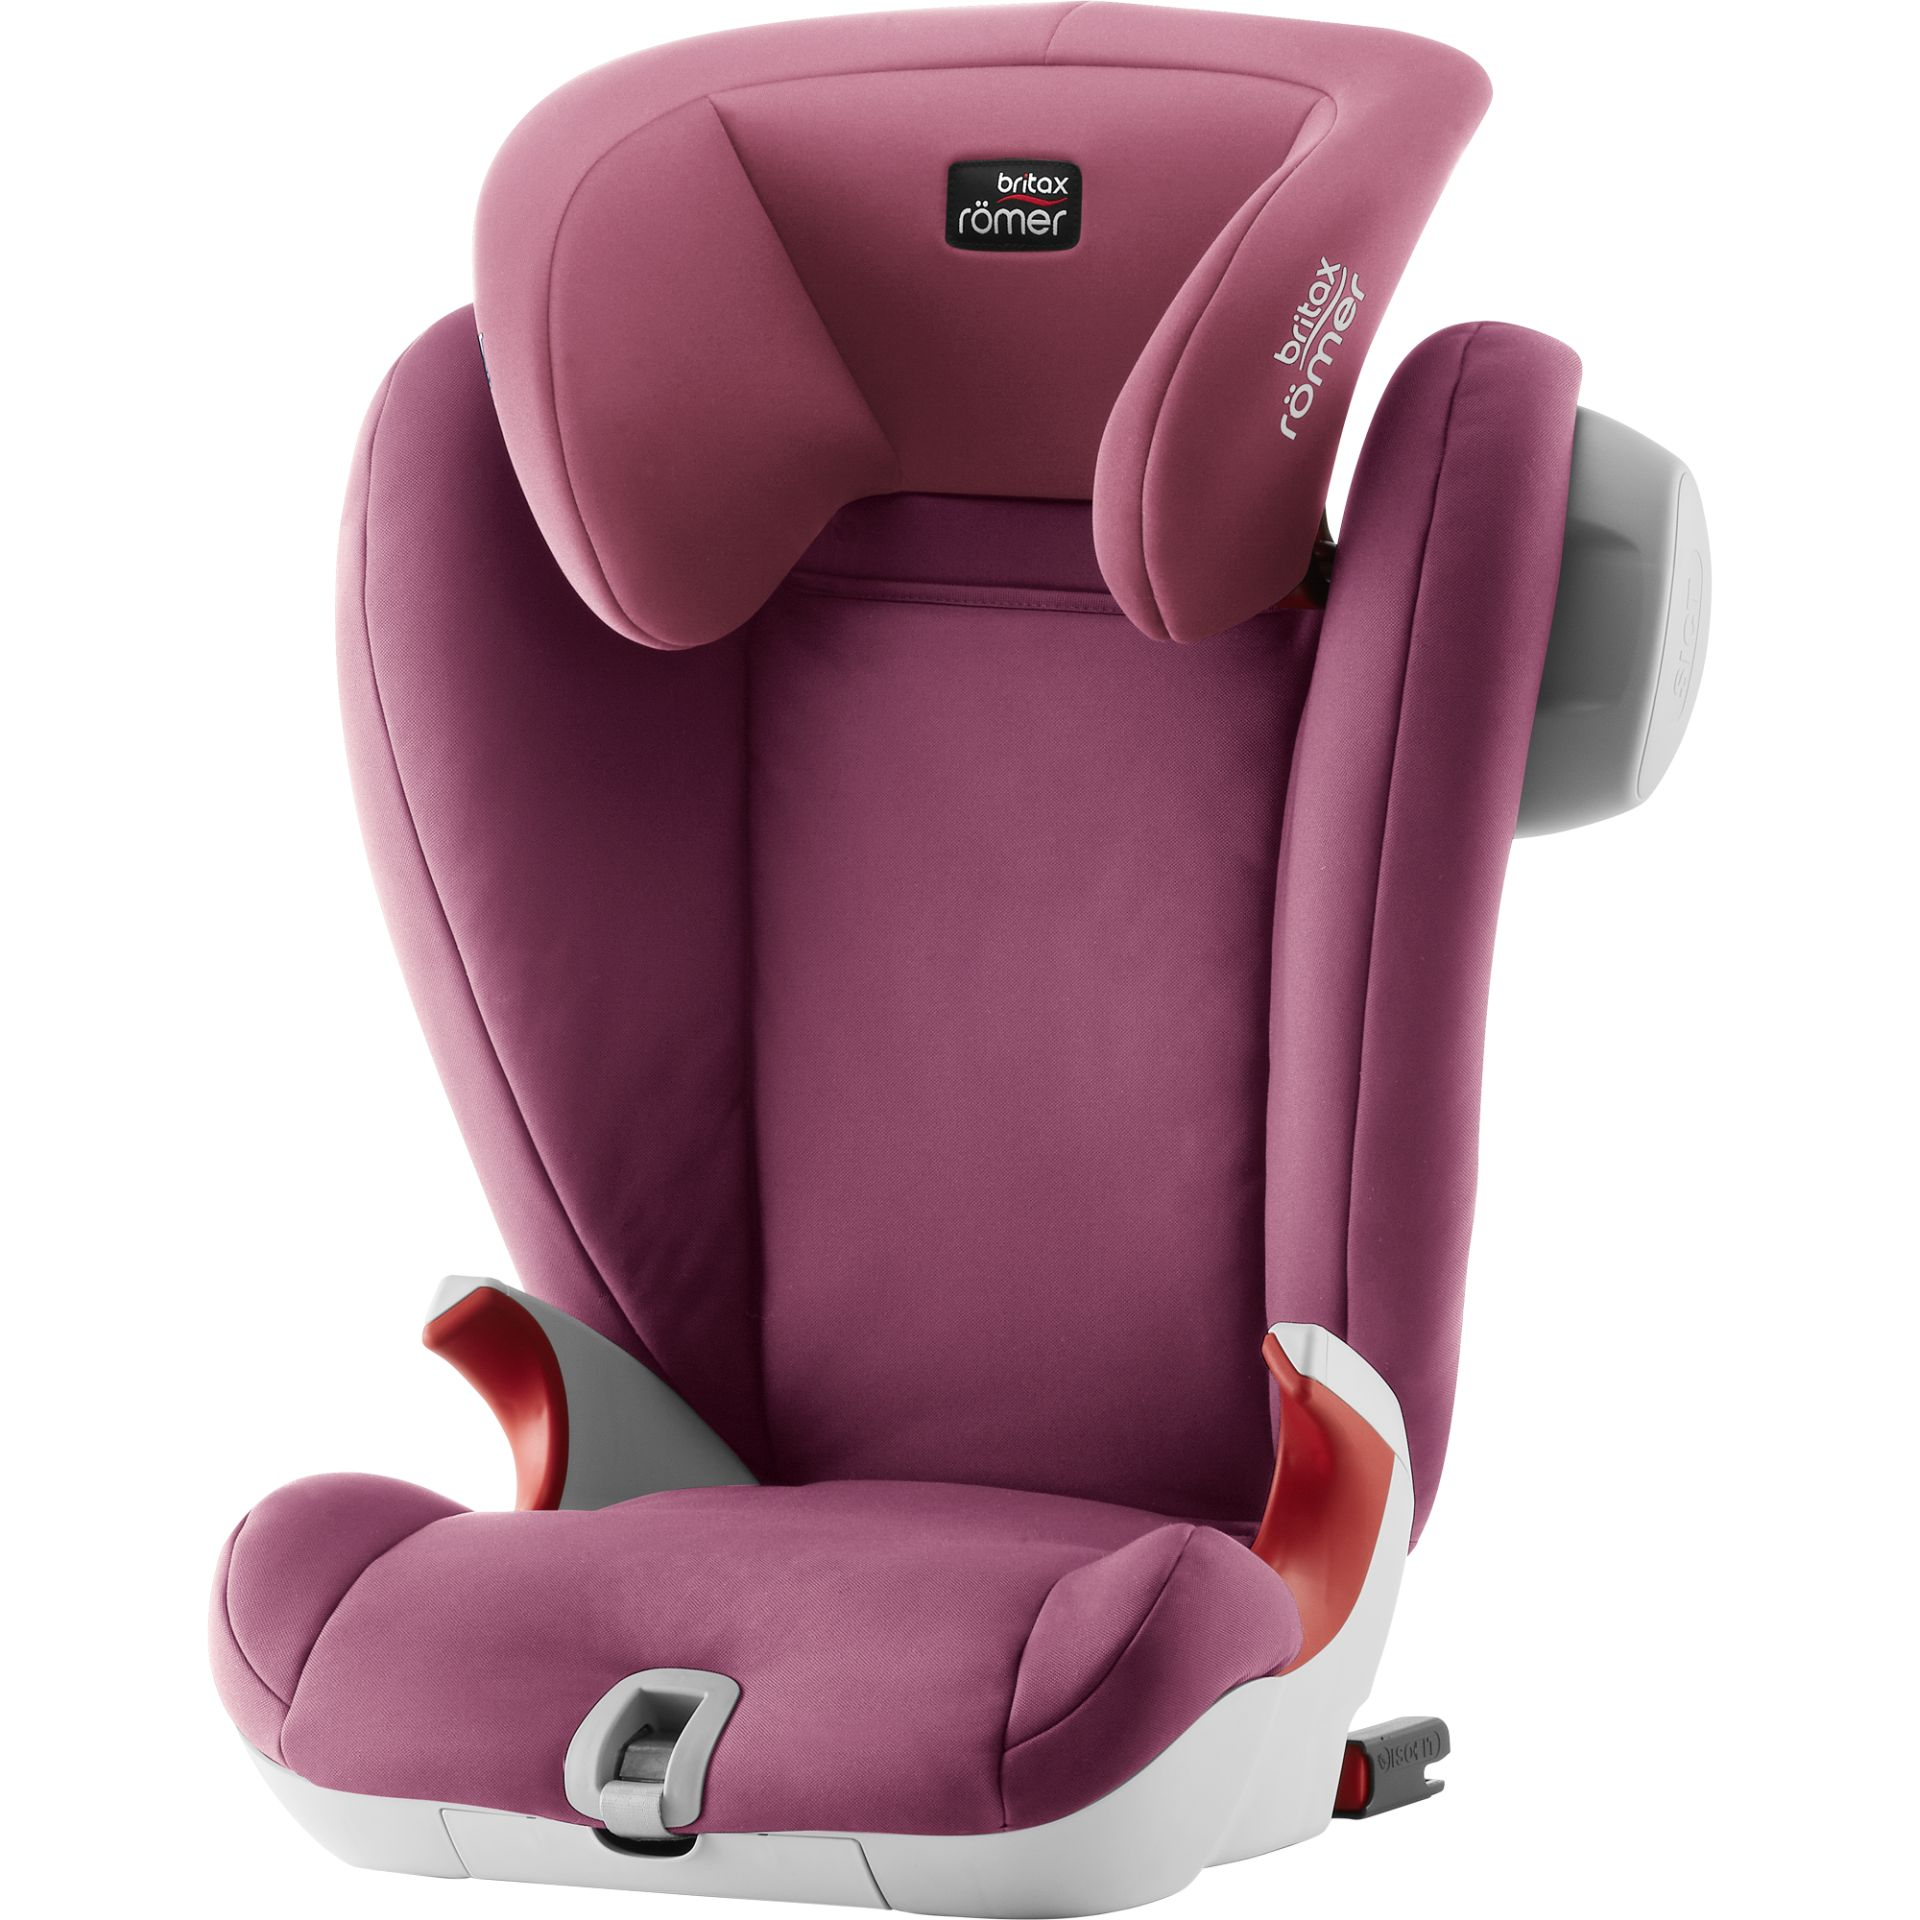 britax r mer child car seat kidfix sl sict 2018 wine rose buy at kidsroom car seats isofix. Black Bedroom Furniture Sets. Home Design Ideas